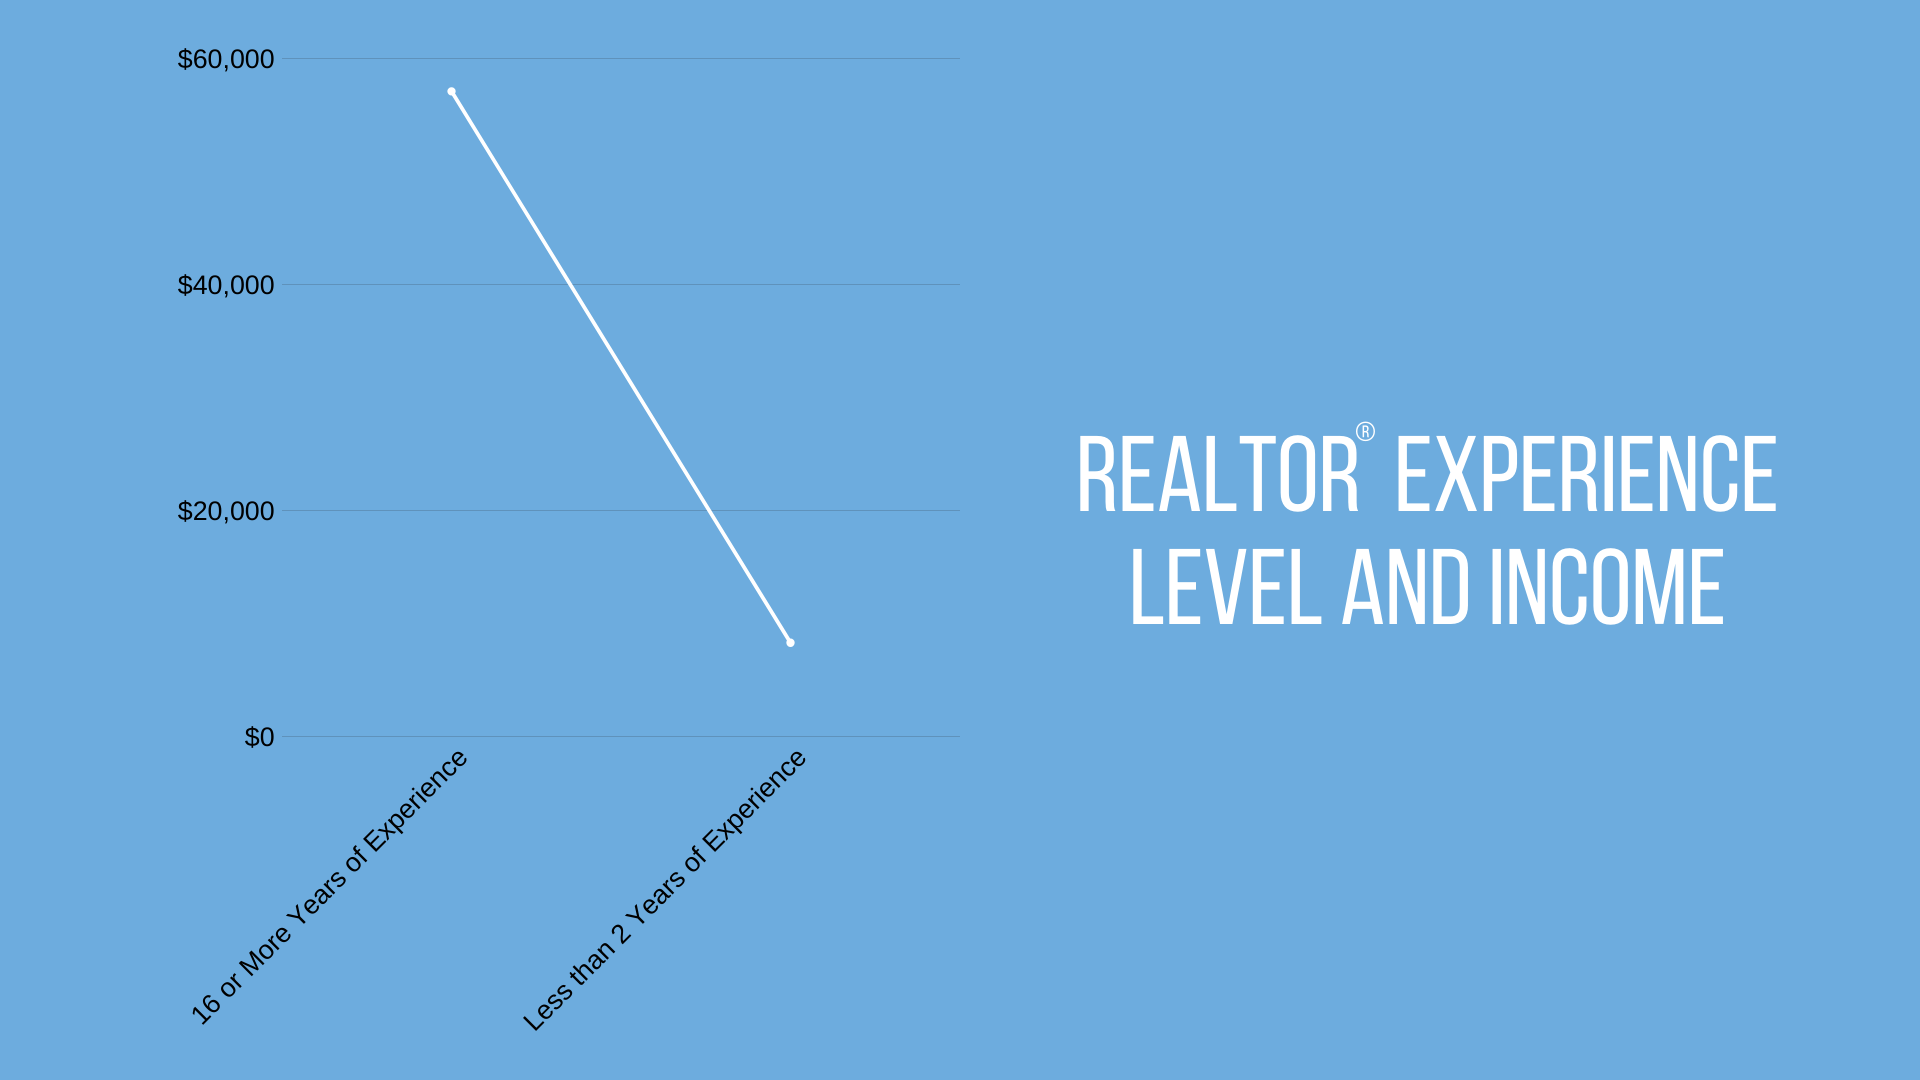 Realtor Experience Level and Income